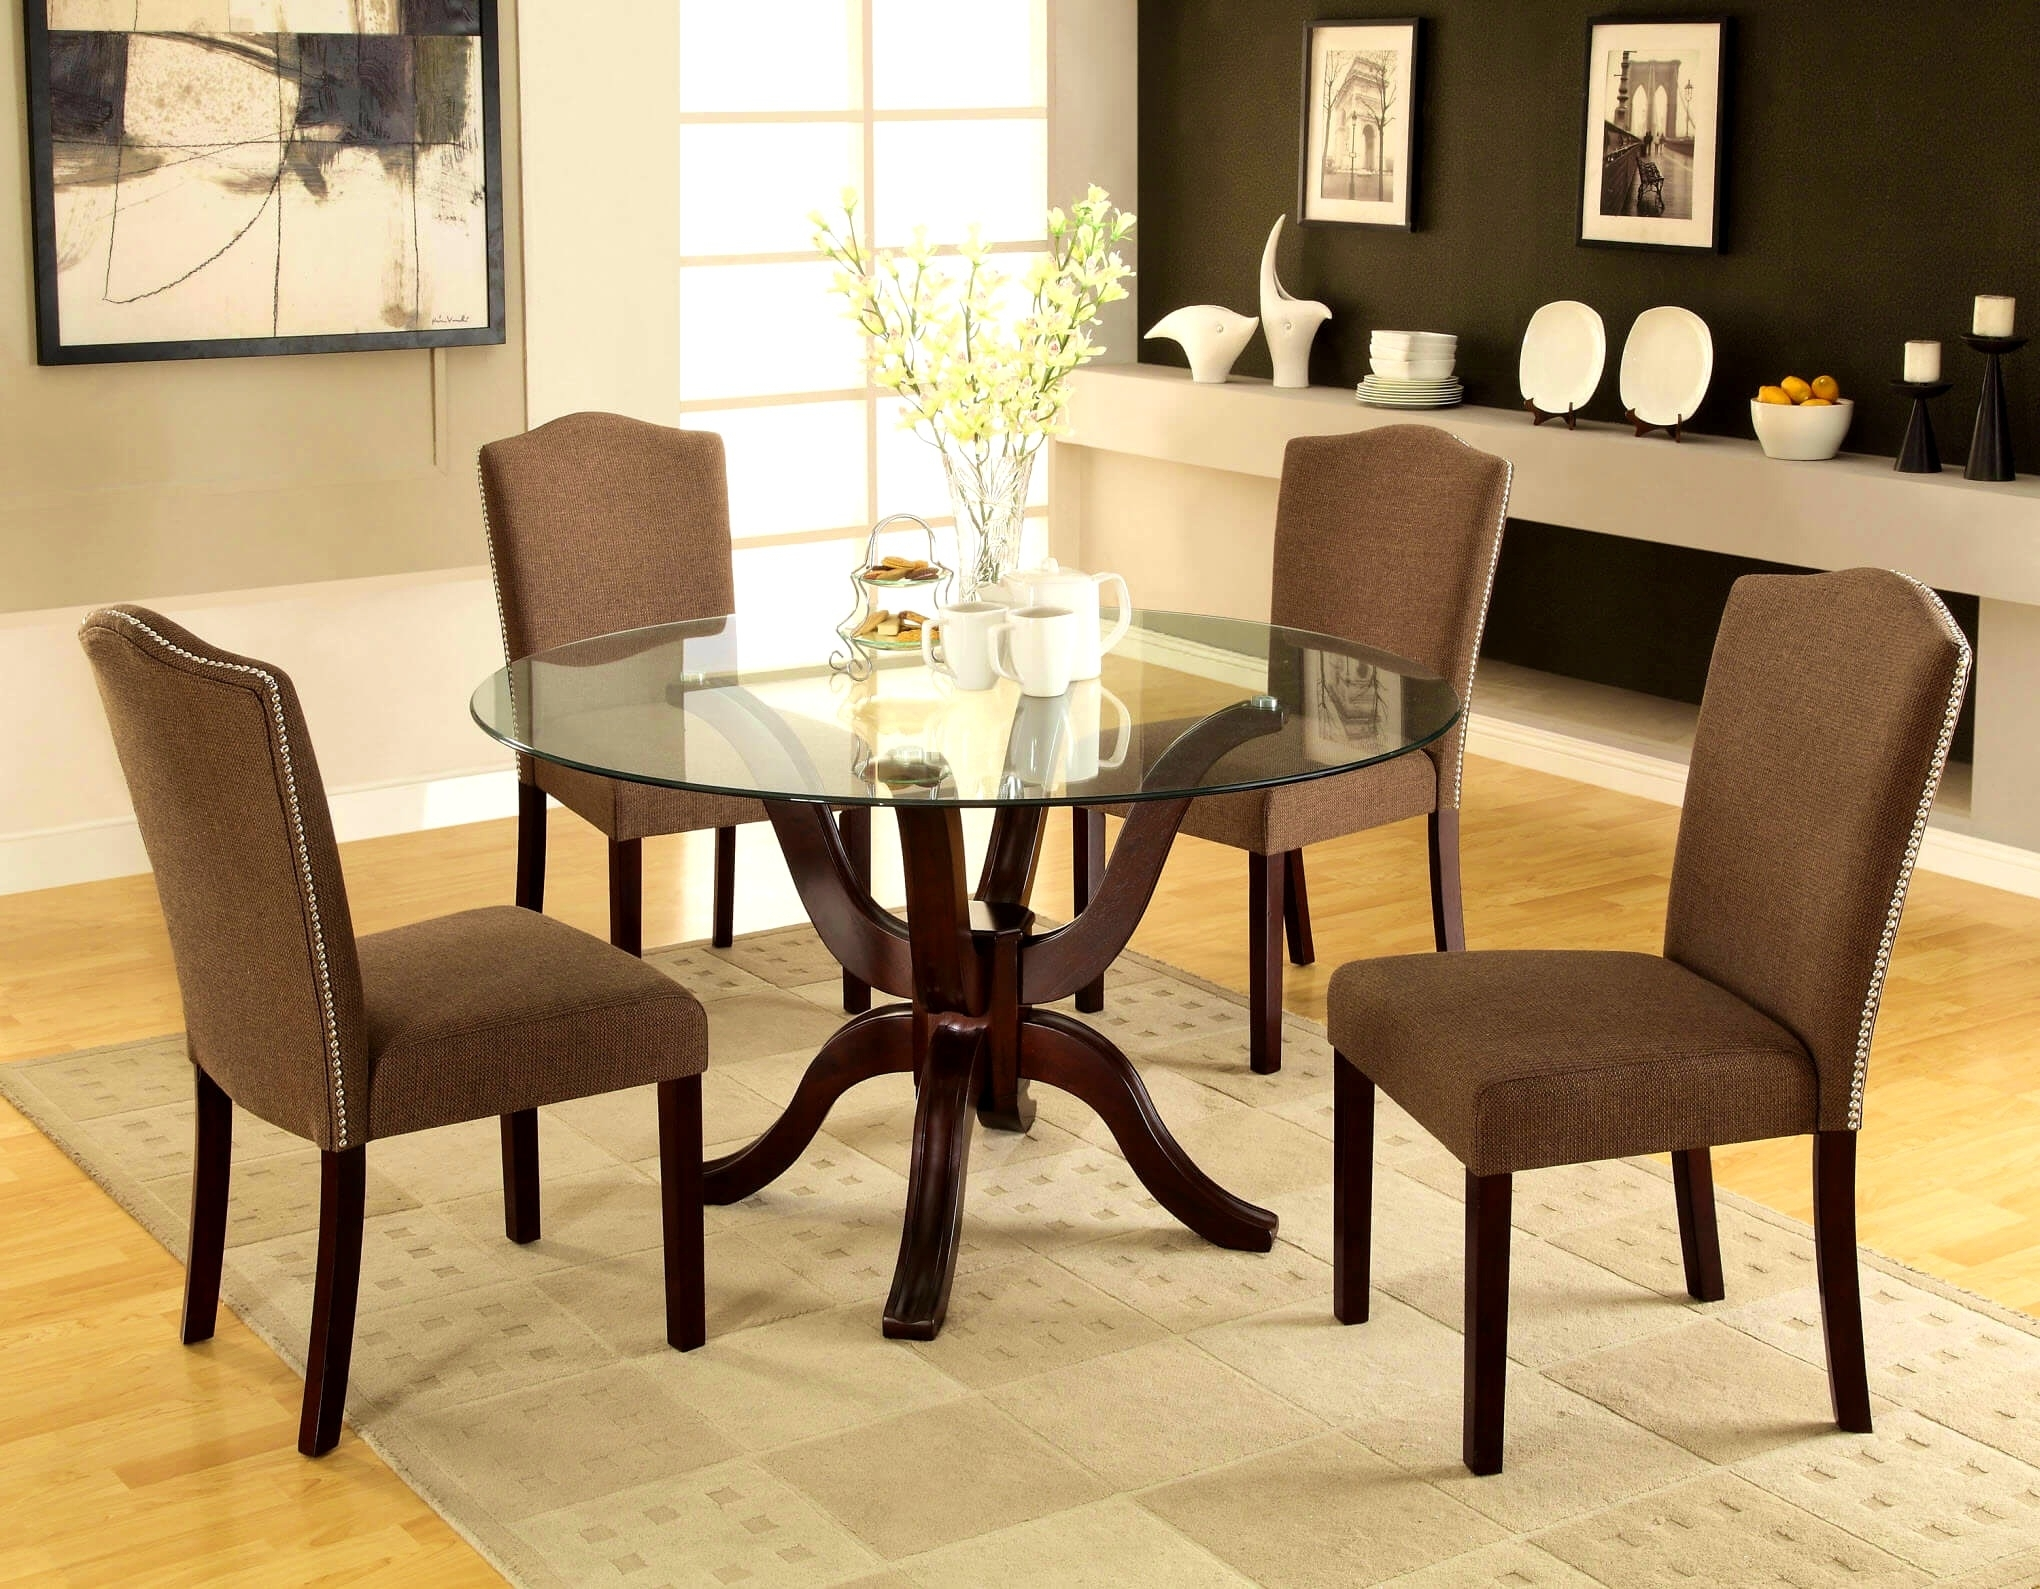 Macy's Round Dining Table Set • Table Setting Design In Recent Macie Round Dining Tables (View 16 of 20)